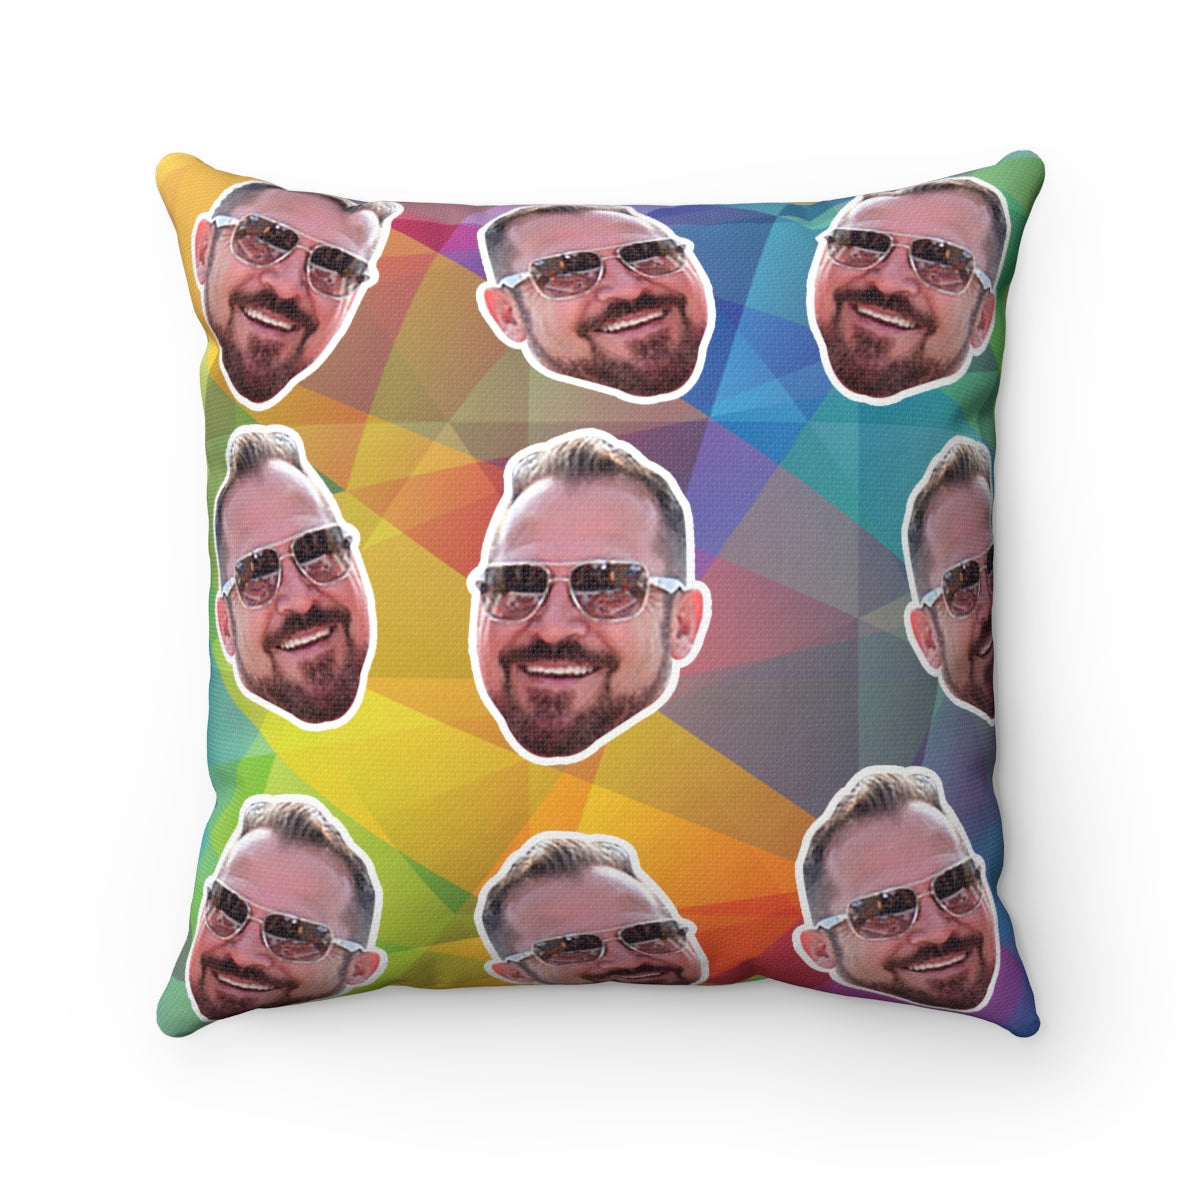 Gay Pride Pillow - LGBT Pillow, Personalize Pillow with your face